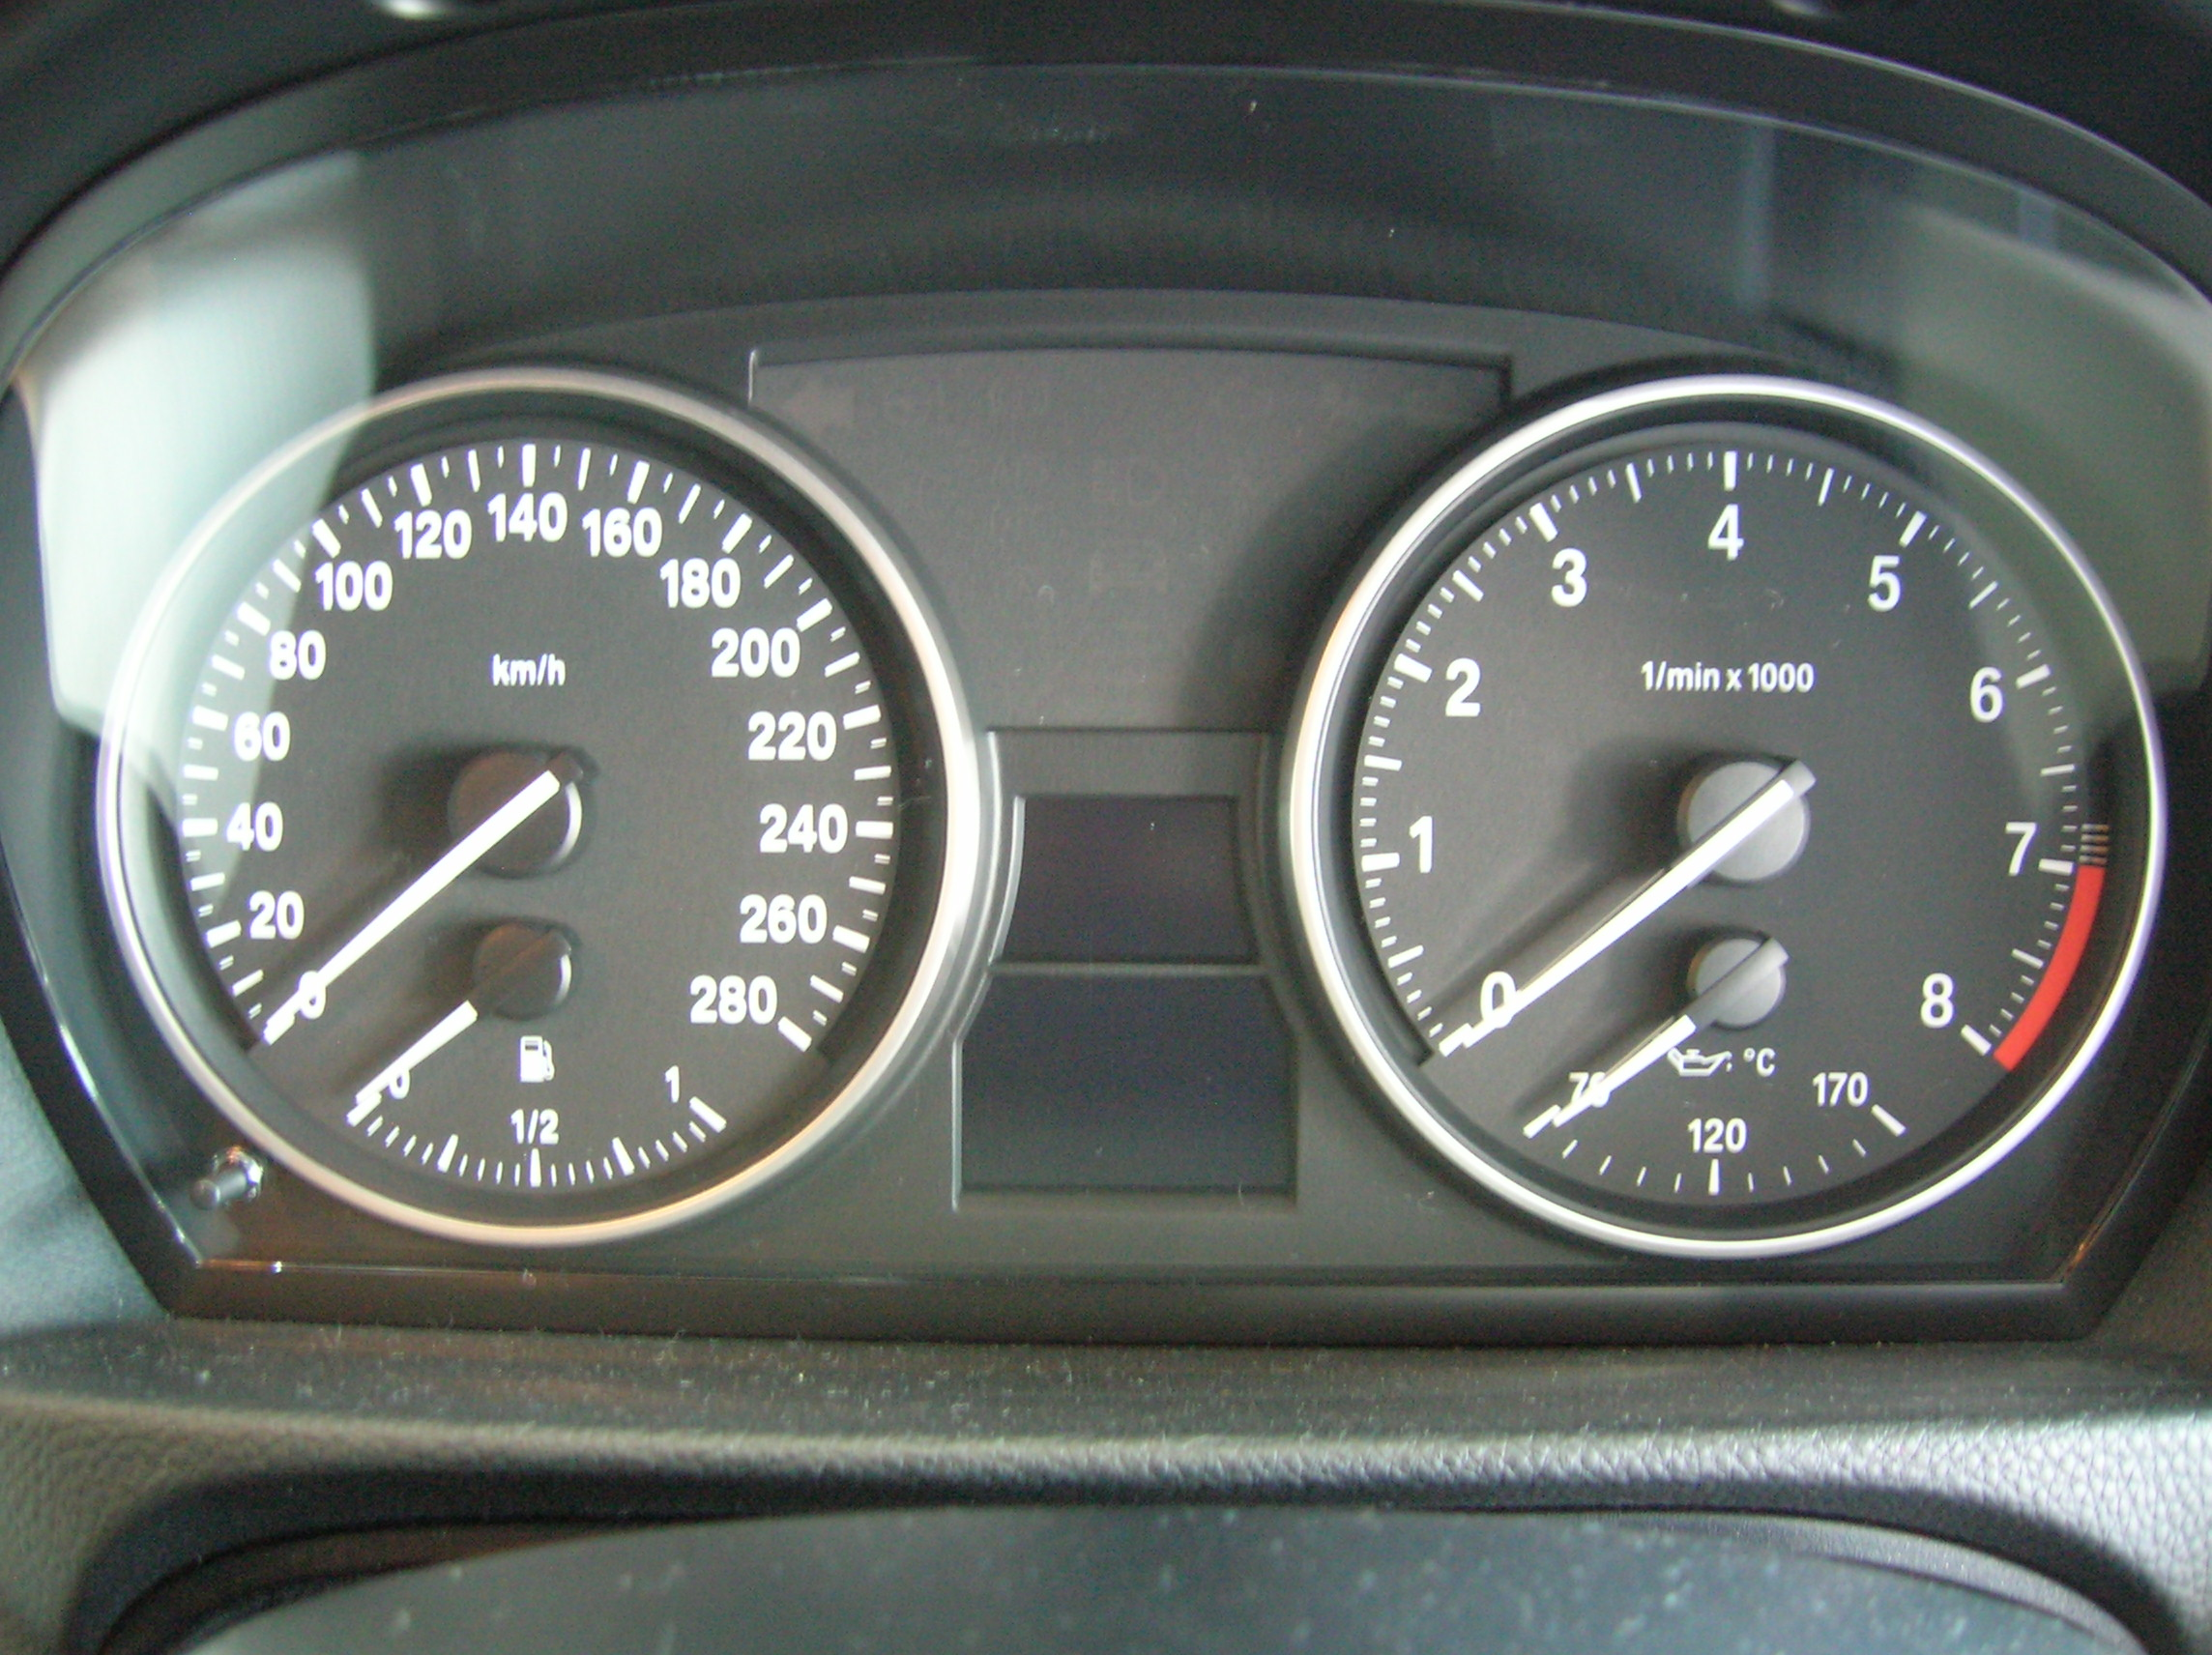 3.0-litre twin-turbo redlines at 7000rpm.